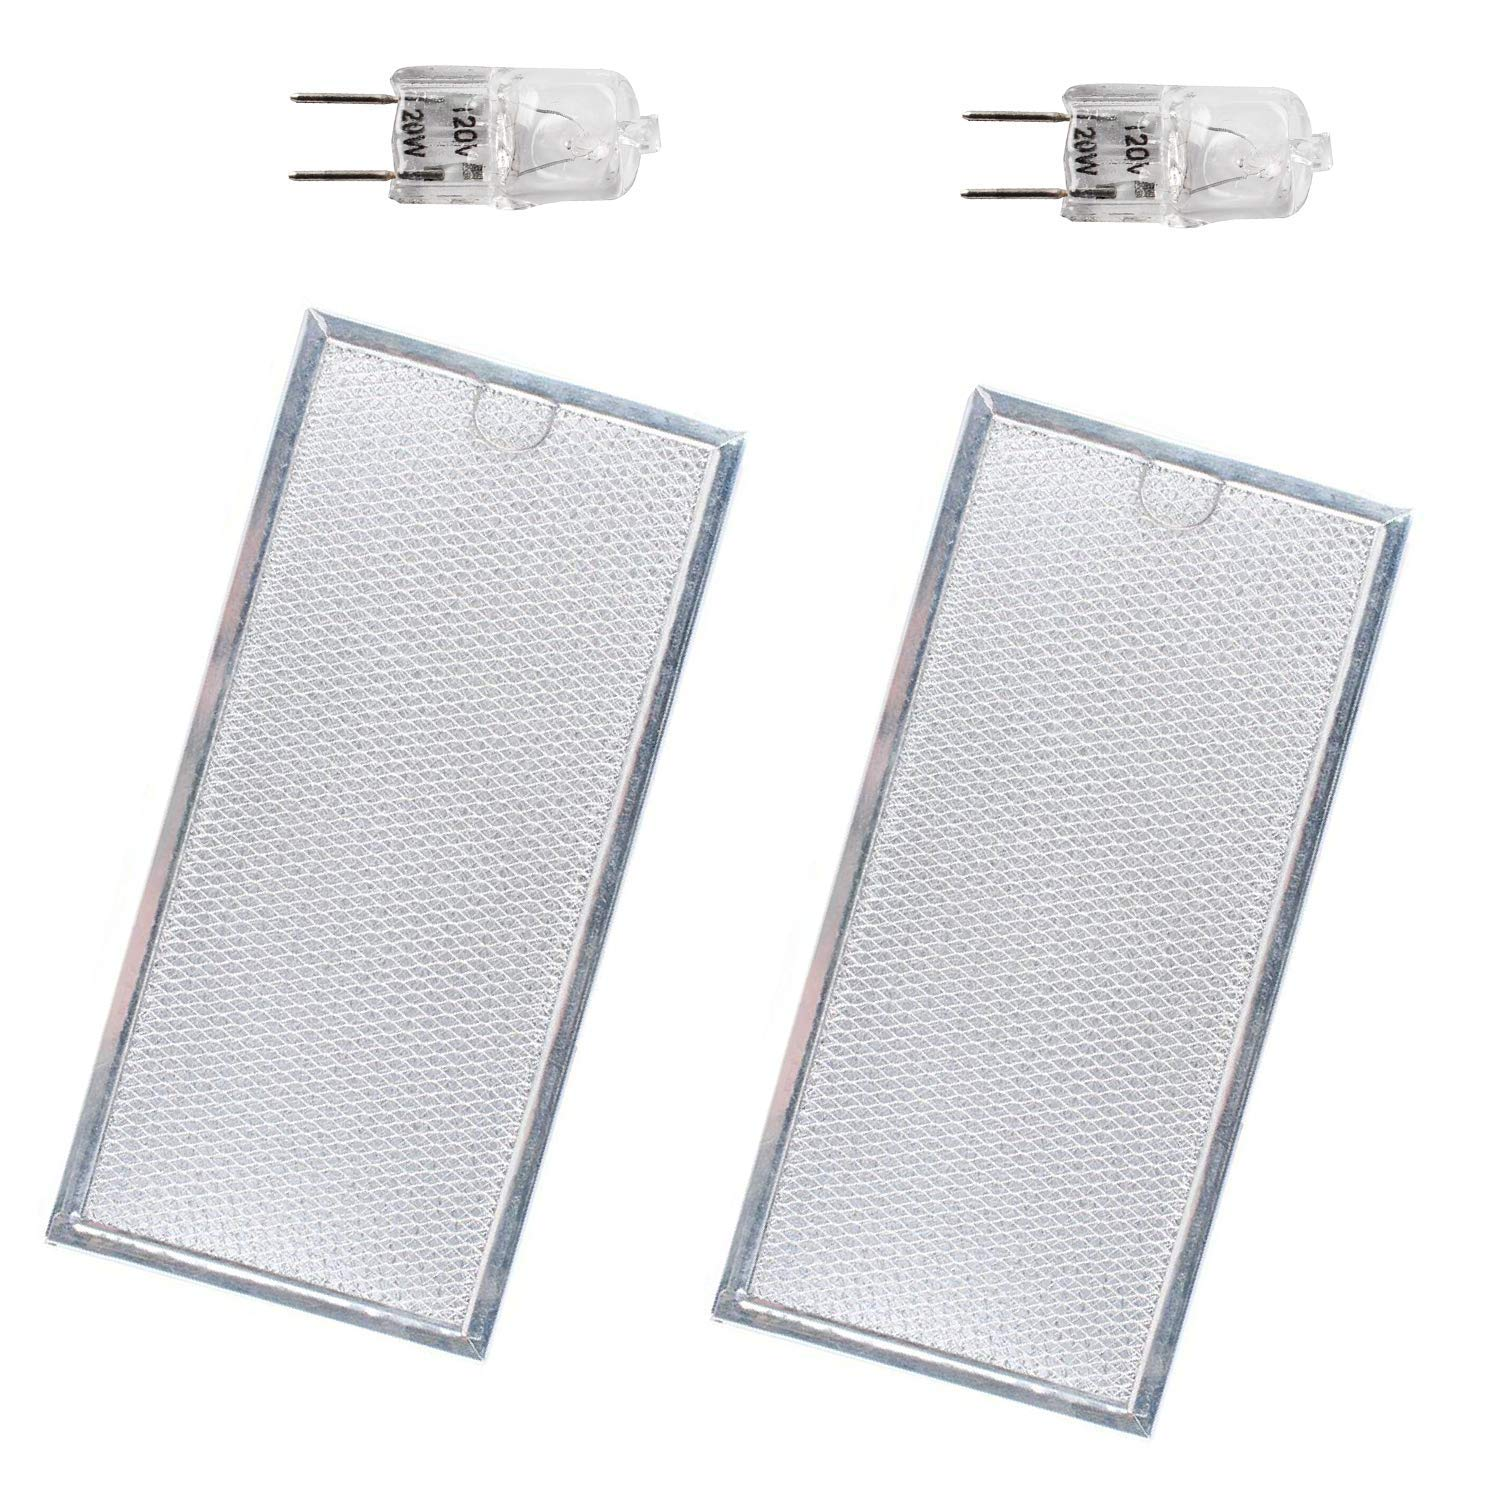 2 WB06X10596 Grease Filter with WB36X10213 Light Bulbs by Podoy Compatible with GE General Electric Hotpoint Microwave Range Hood Pack of 2